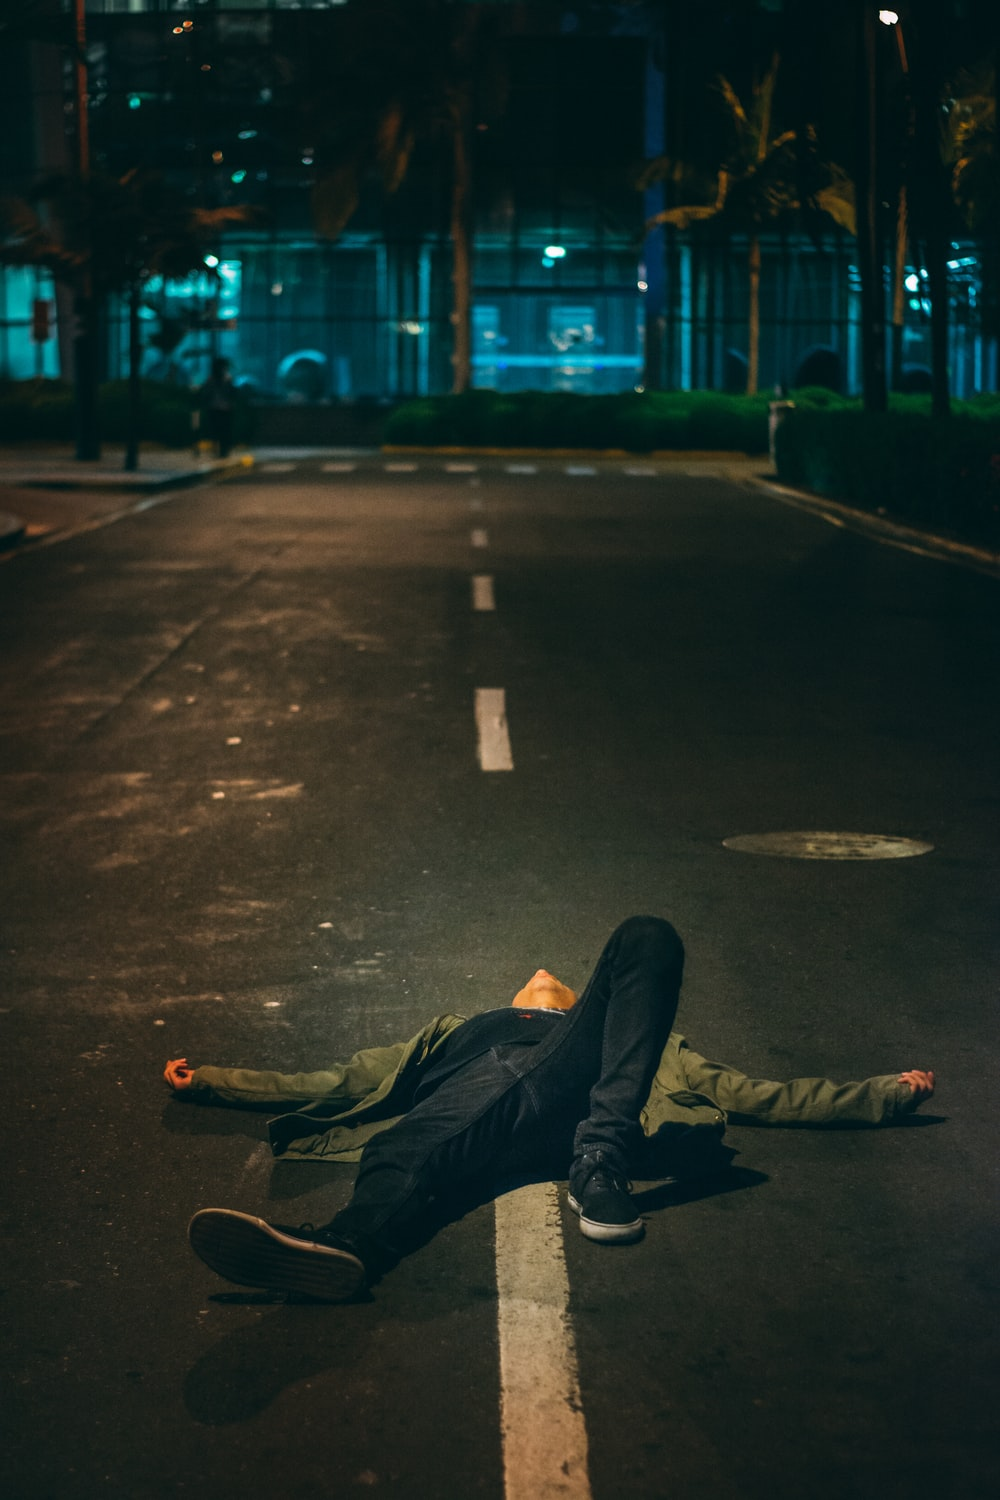 man laying down on road during nighttime